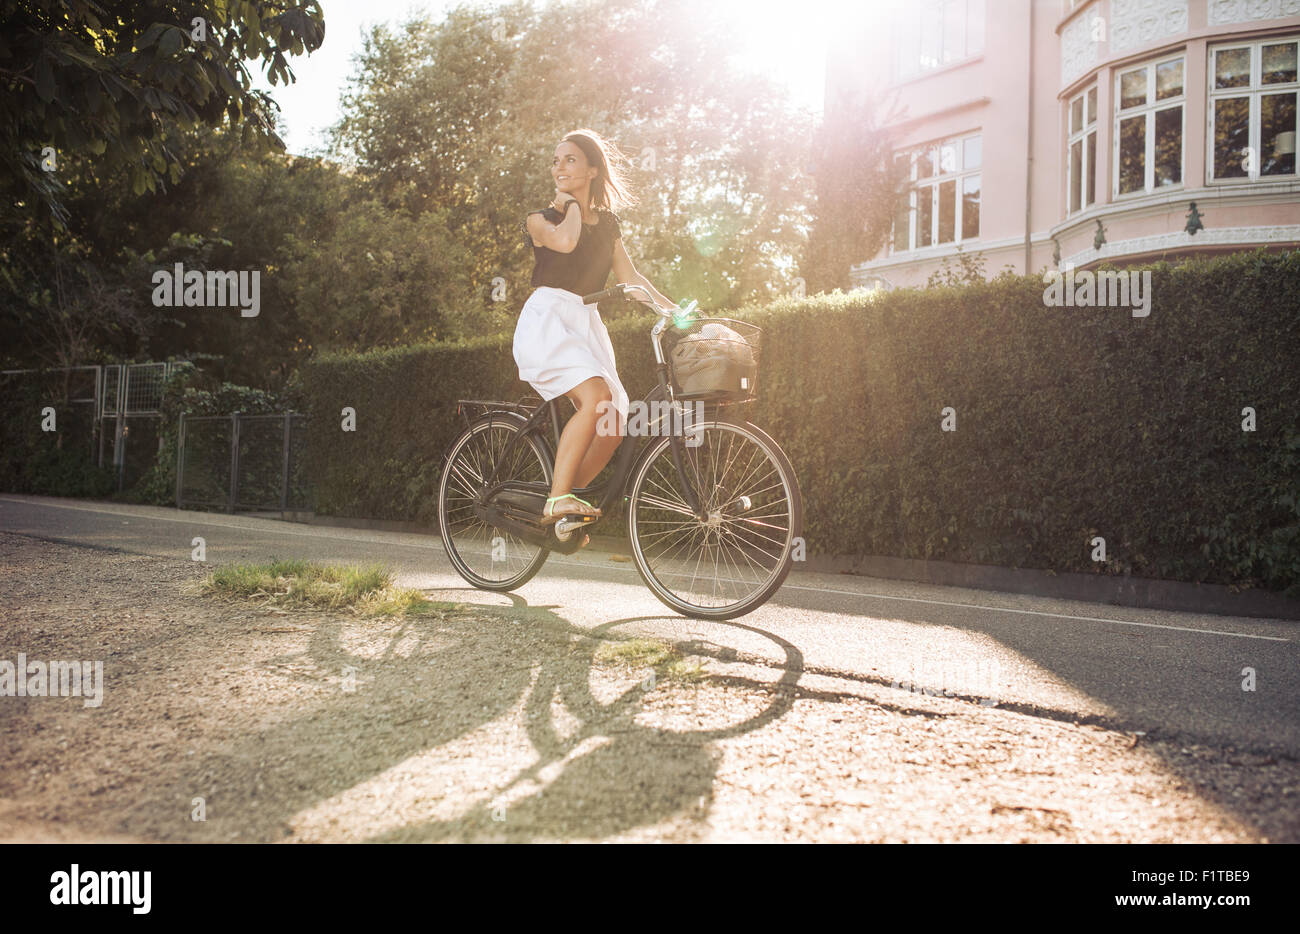 Pretty young woman enjoying bicycle ride through the street. Female looking away smiling while cycling. Stock Photo